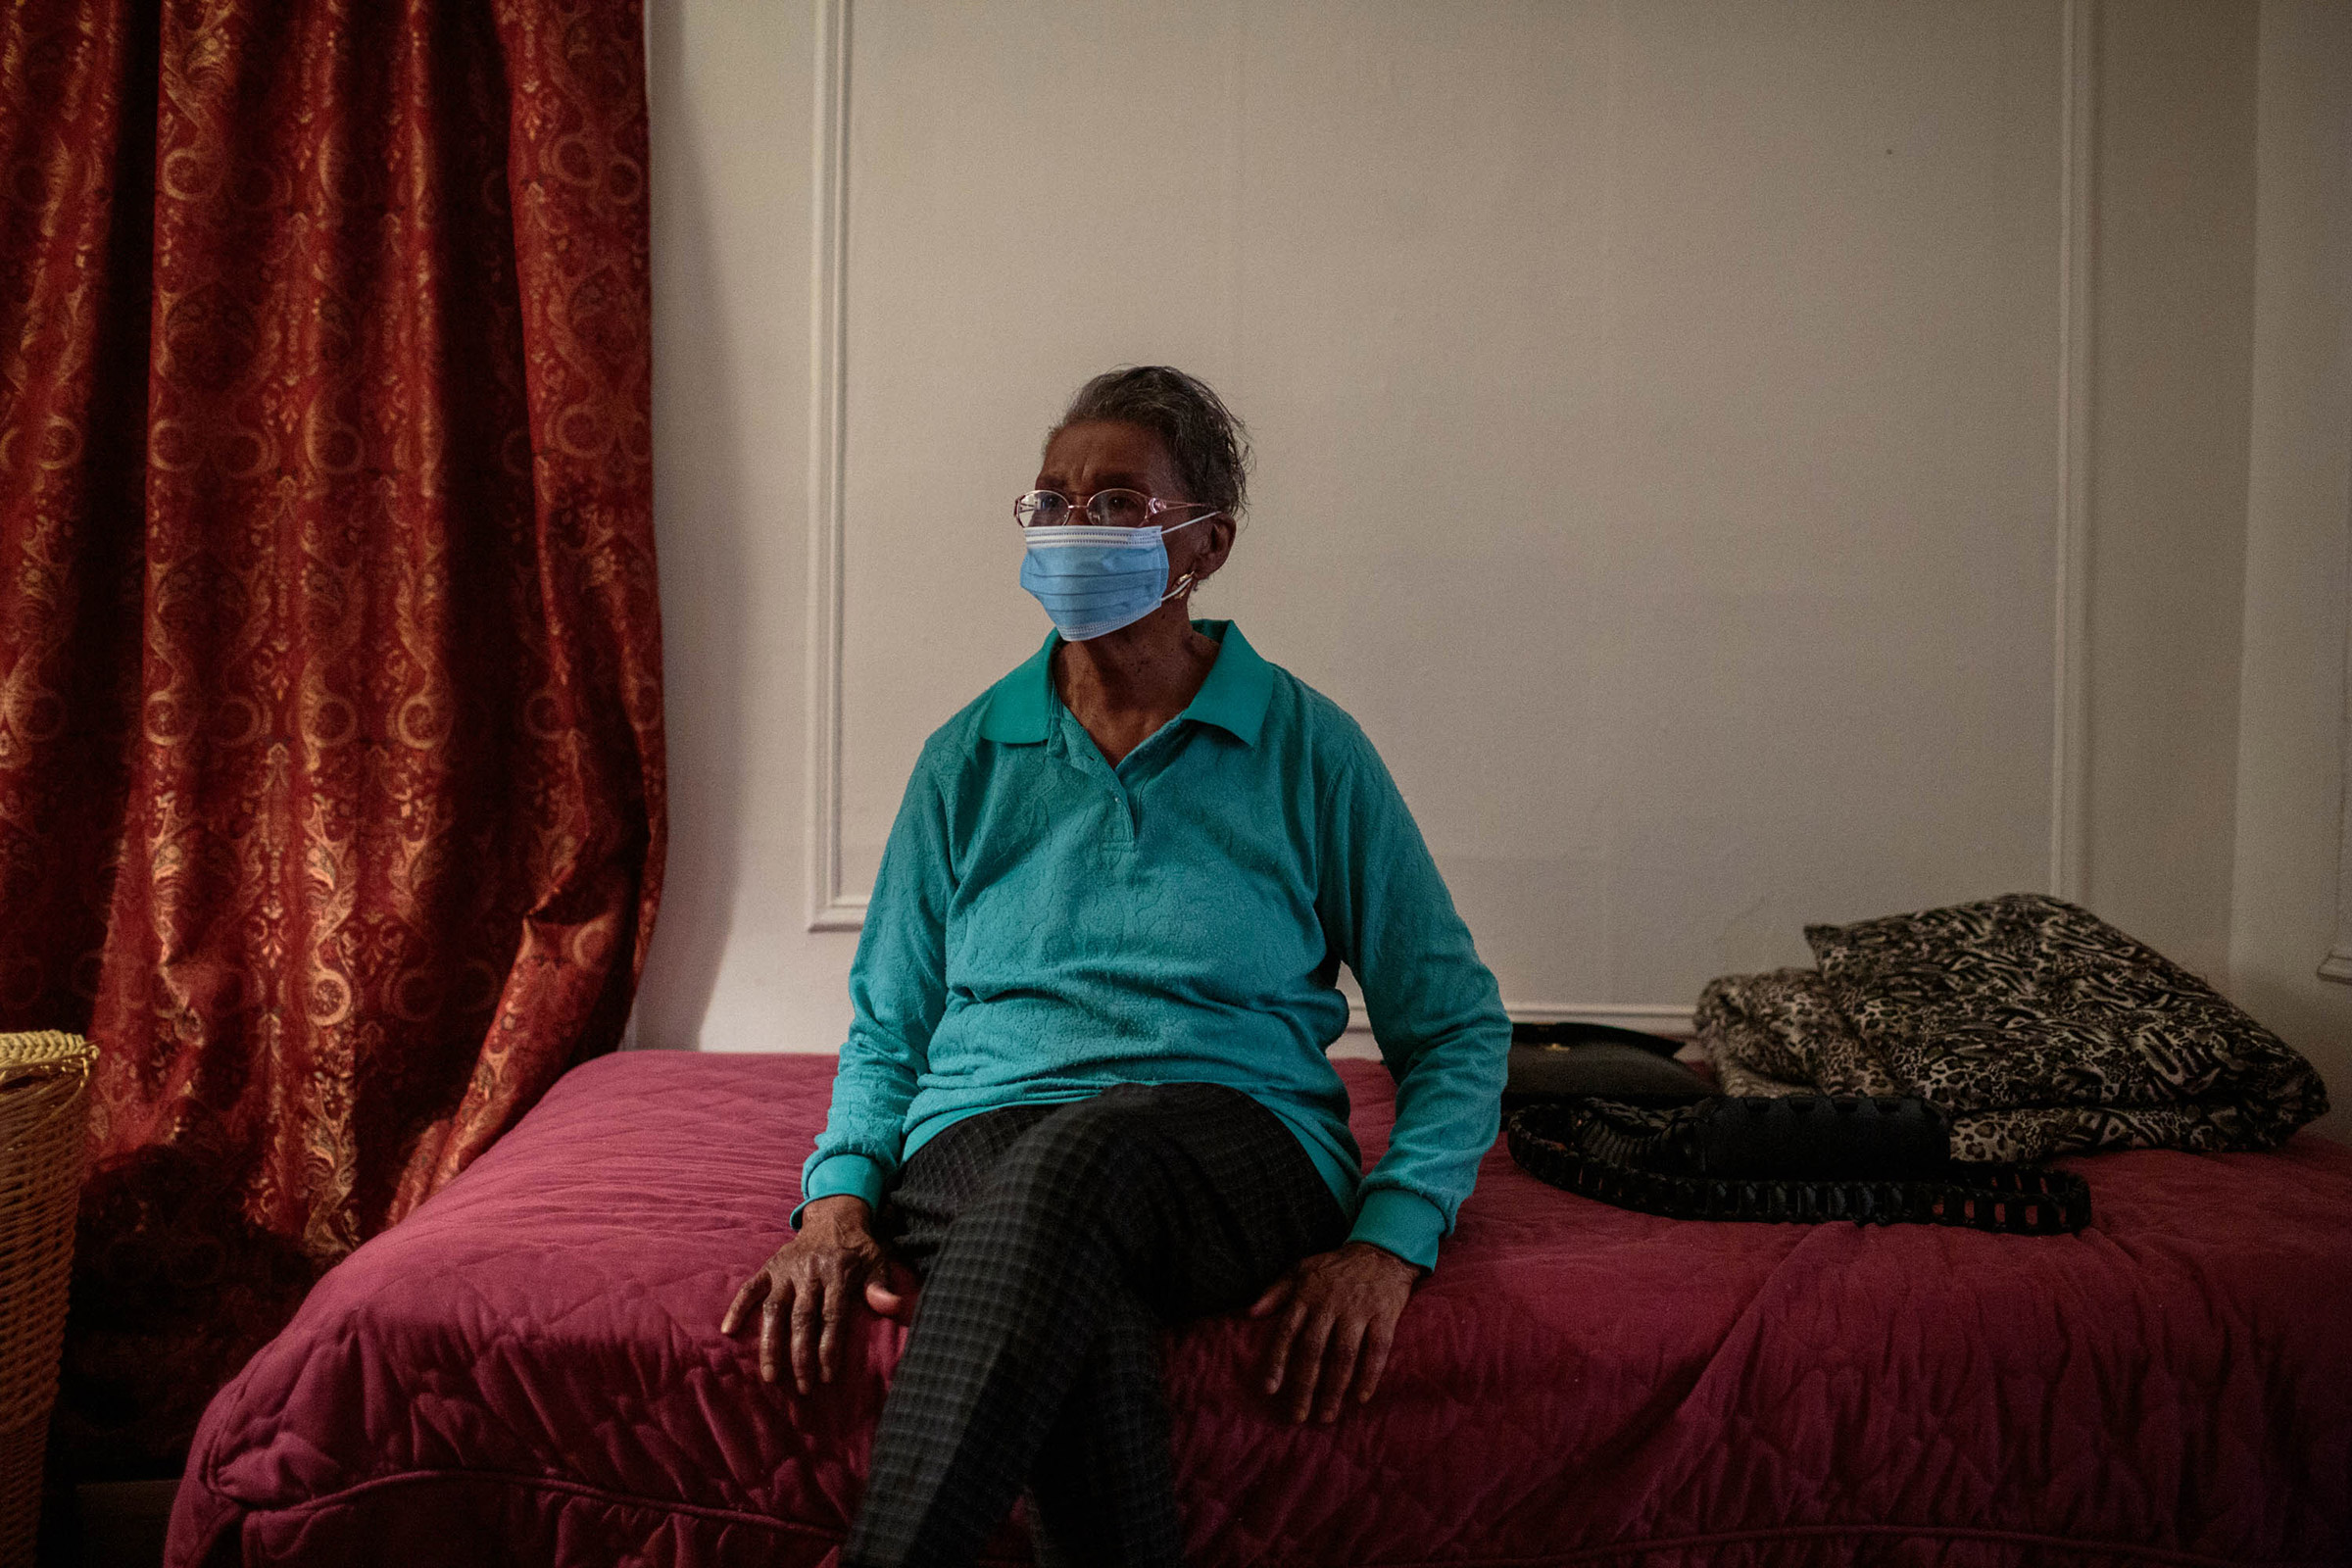 Community activist Blanche Romey watches TV in her bedroom after checking up on her close friends in the Bushwick neighborhood of Brooklyn, NY, on April 3. They are all in their 80s, and as the reality of the pandemic sets in, Blanche tries to check in with them daily.